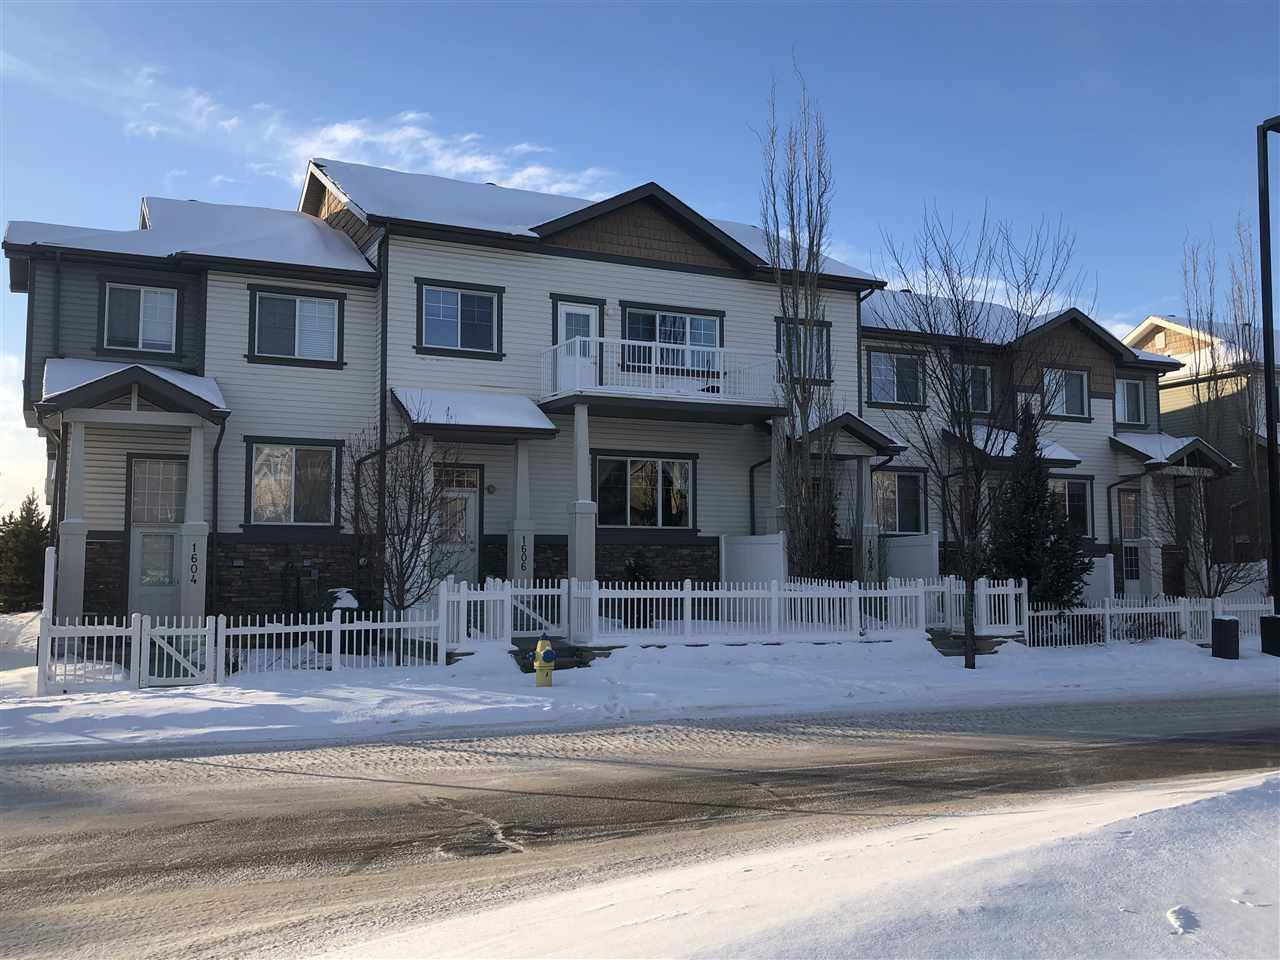 Main Photo: #1608 TOWNE CENTRE BV NW in Edmonton: Zone 14 Townhouse for sale : MLS®# E4235572